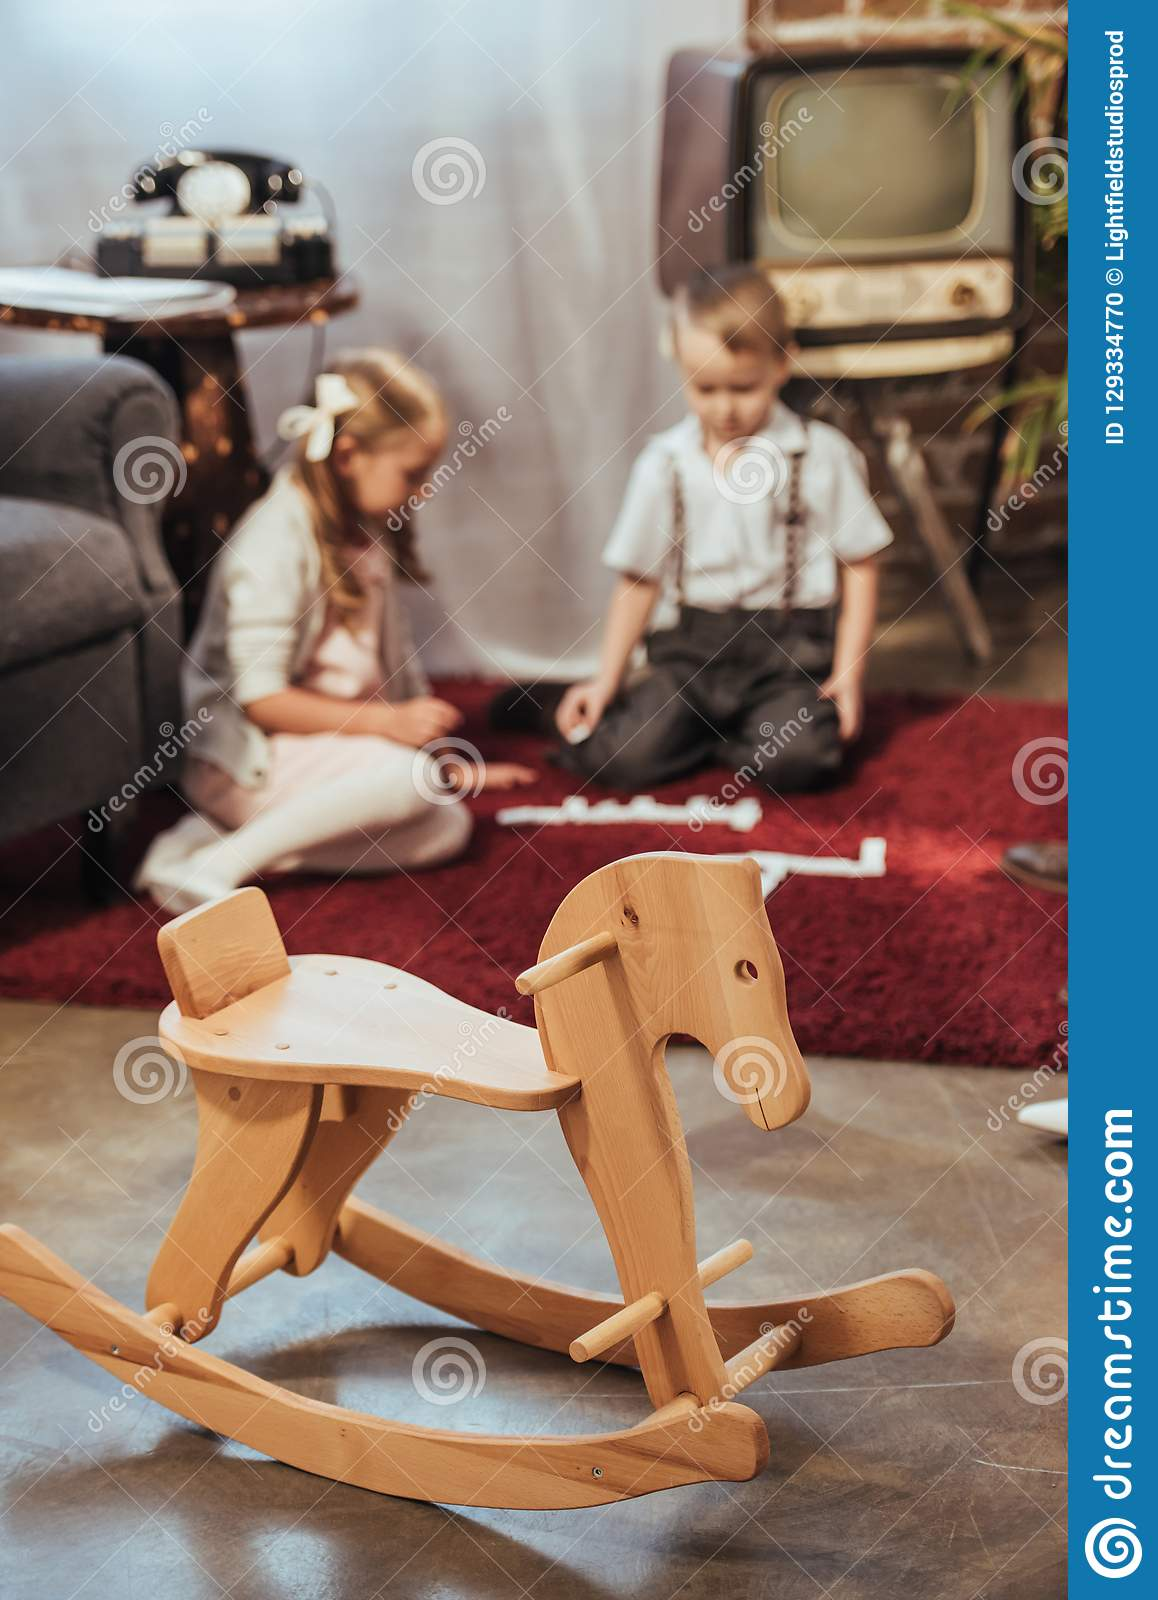 Wooden Rocking Horse And Little Kids Playing With Domino Tiles At Home Stock Photo Image Of Dominotiles Oldfashioned 129334770